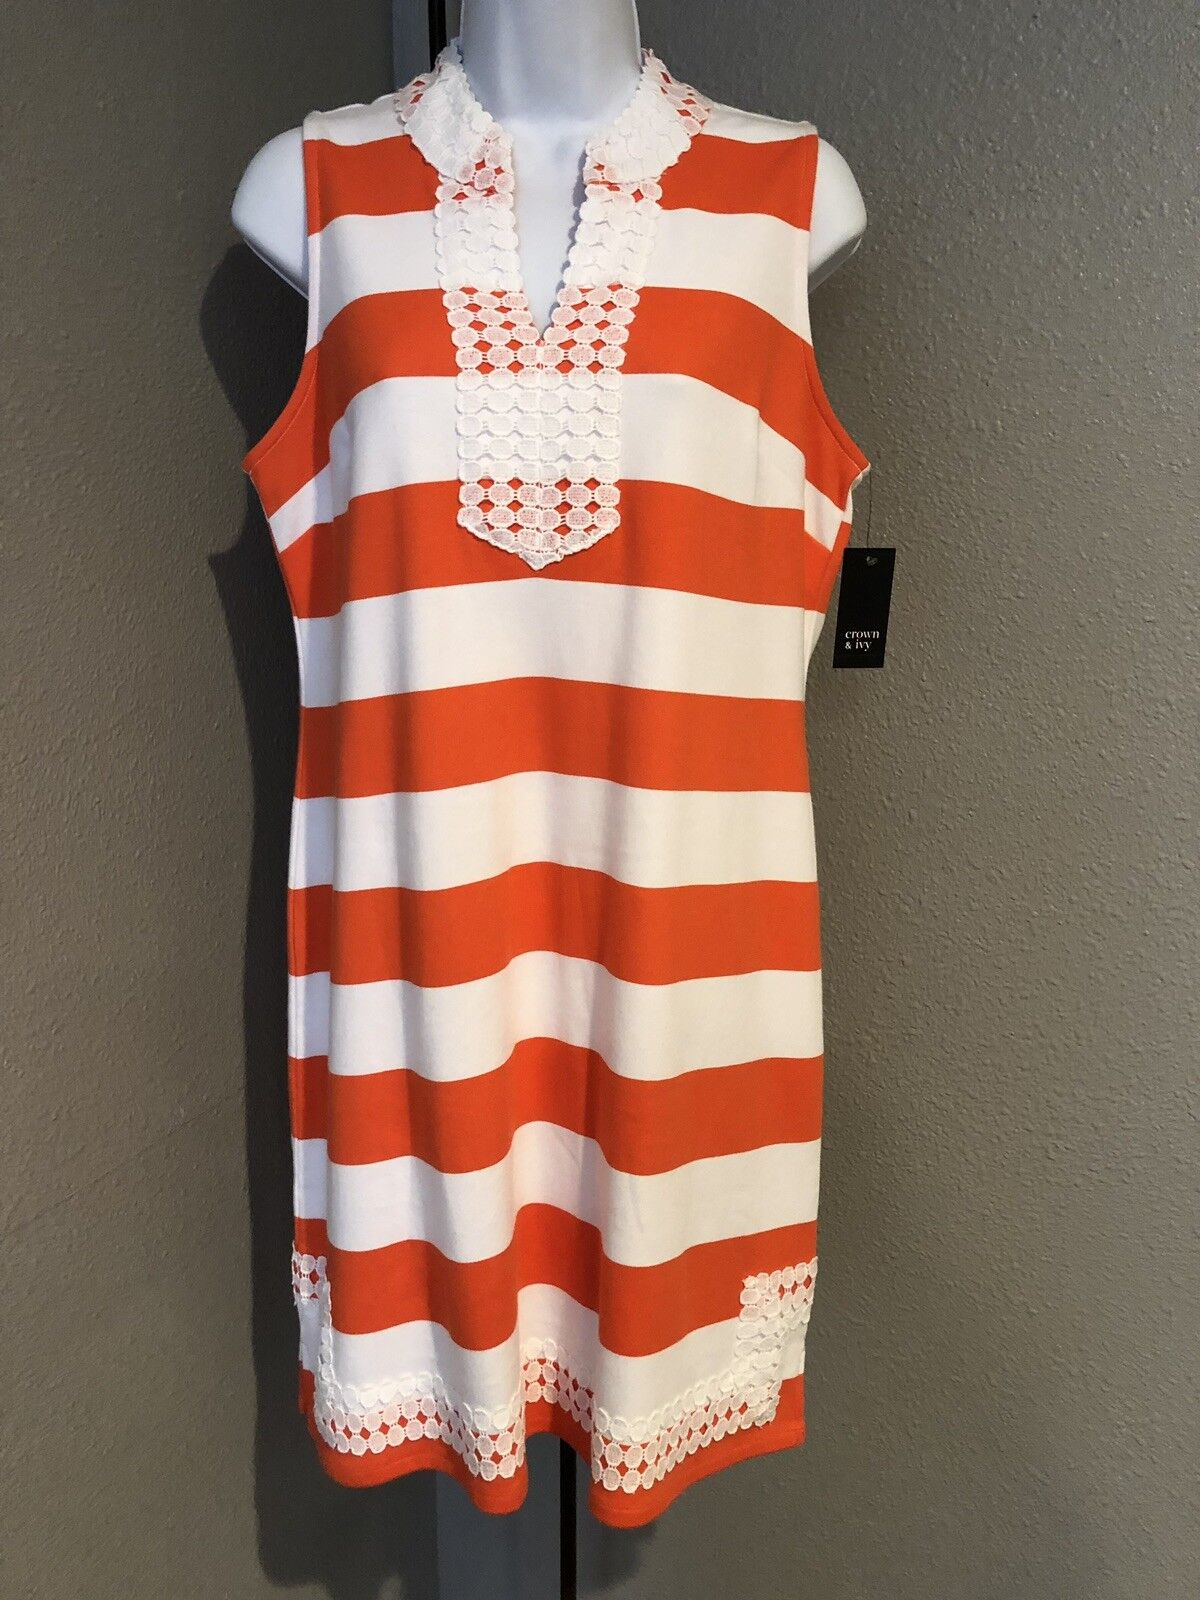 Crown & Ivy Womens Striped Dress orange White Size Small.  G44